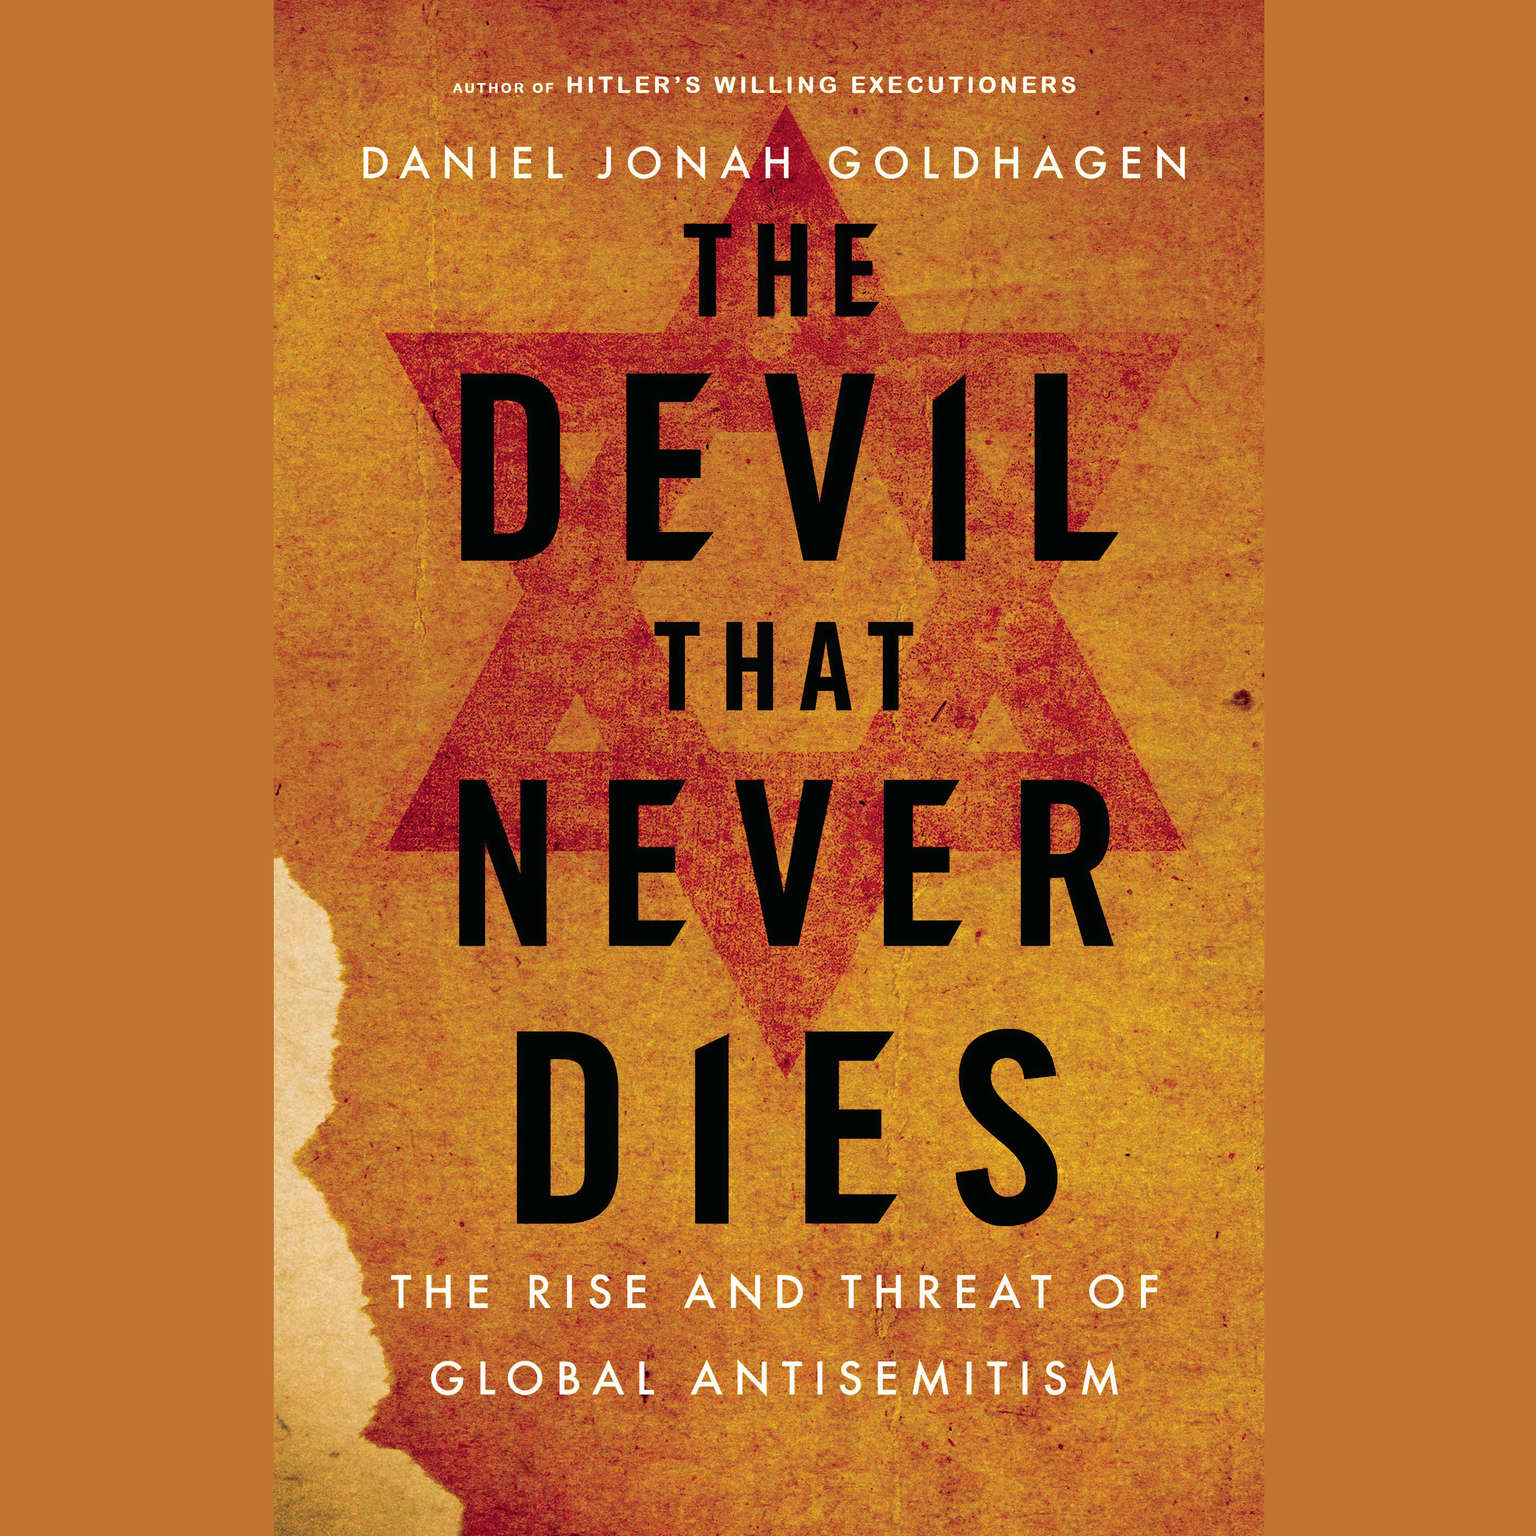 Printable The Devil That Never Dies: The Rise and Threat of Global Antisemitism Audiobook Cover Art